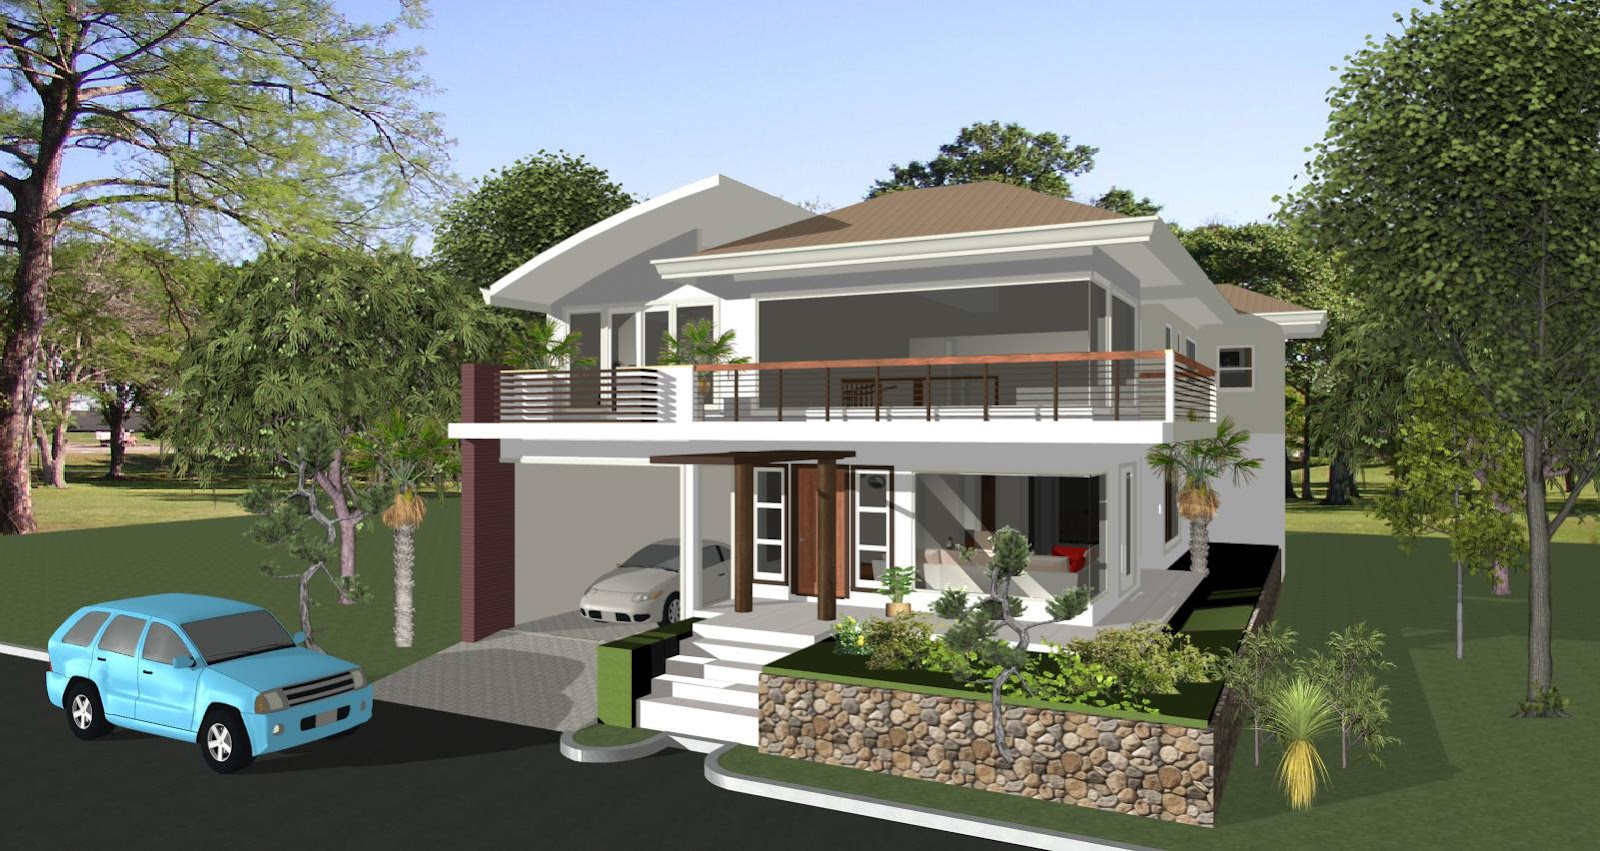 House designs philippines architect bill house plans for Architecture house design philippines